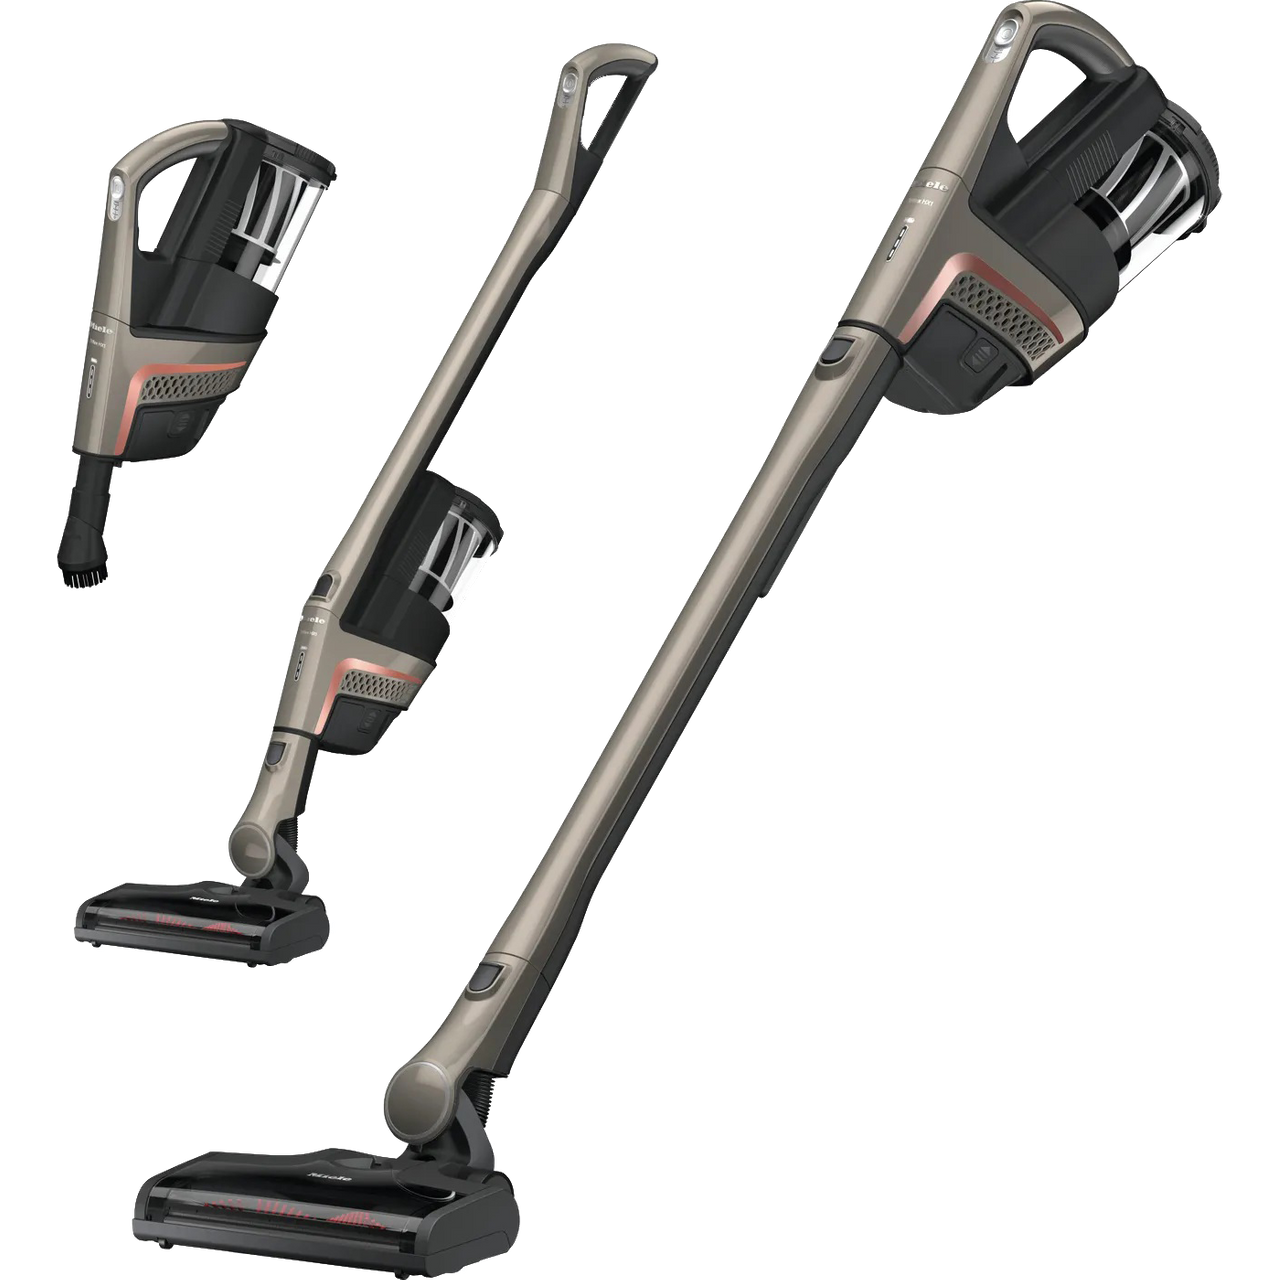 Miele Triflex HX1 Power Cordless Vacuum Cleaner with up to 120 Minutes Run Time